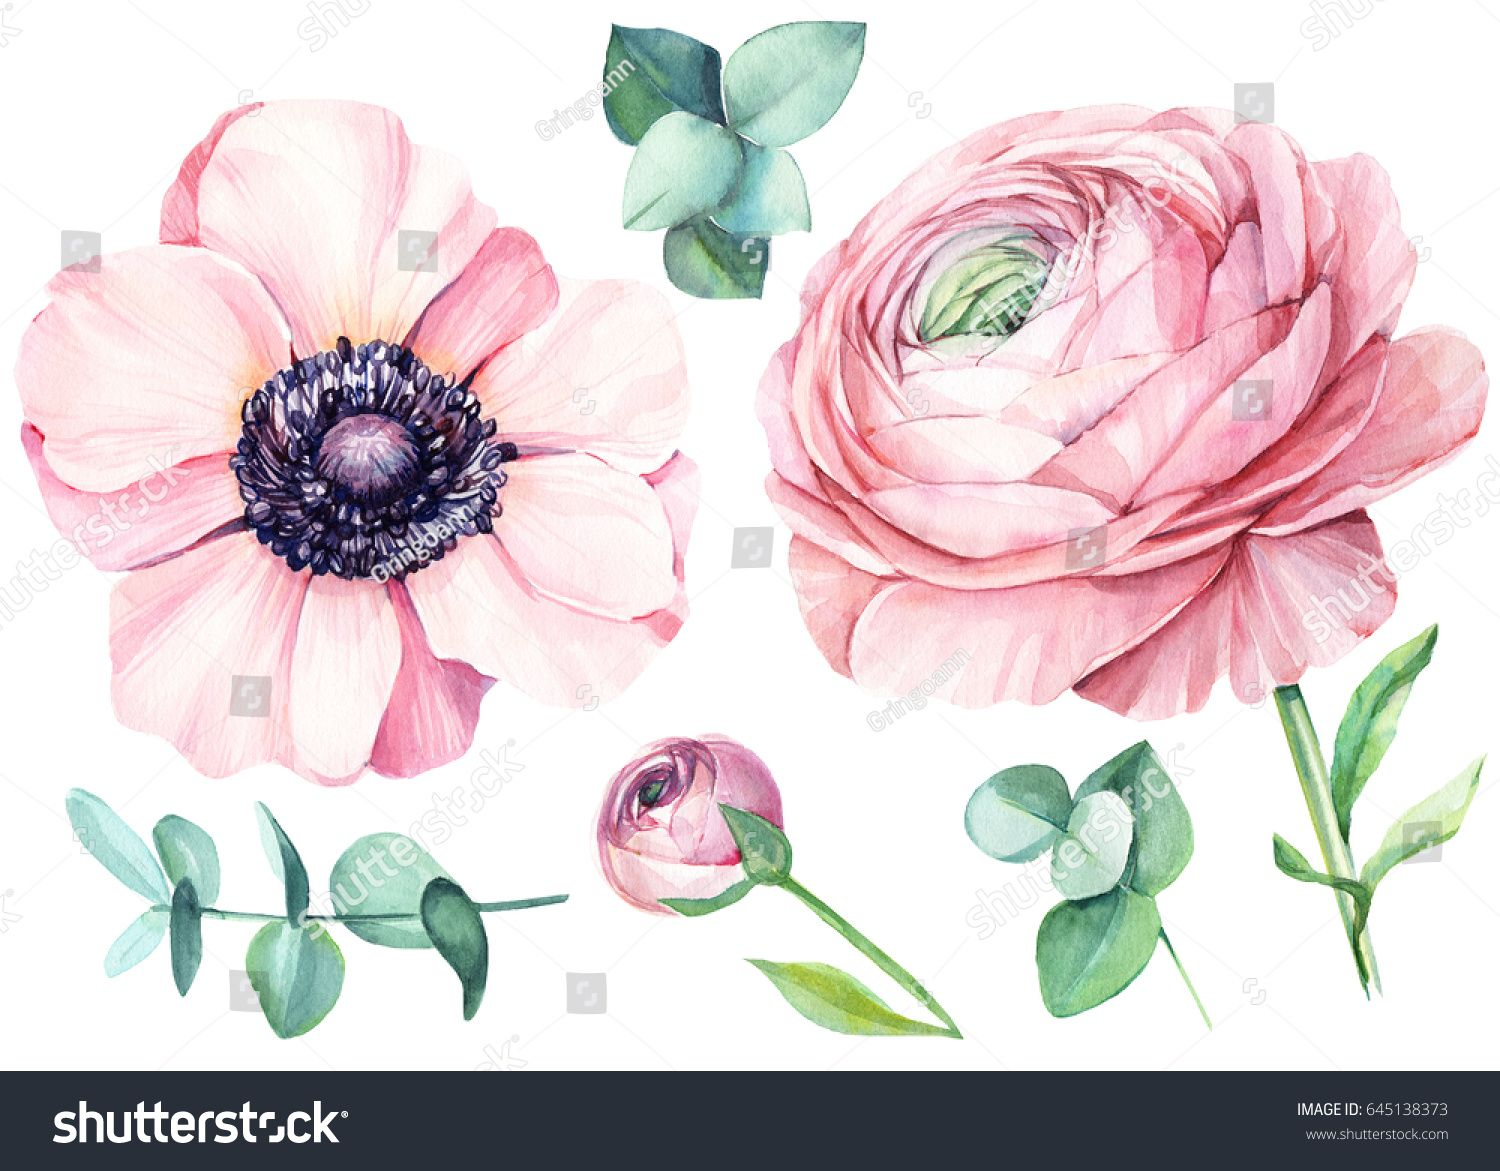 Ranunculus and eucalyptus anemone floral isolated elements for floral isolated elements for wedding invitation greeting cards watercolour buy this stock illustration on shutterstock find other images kristyandbryce Images